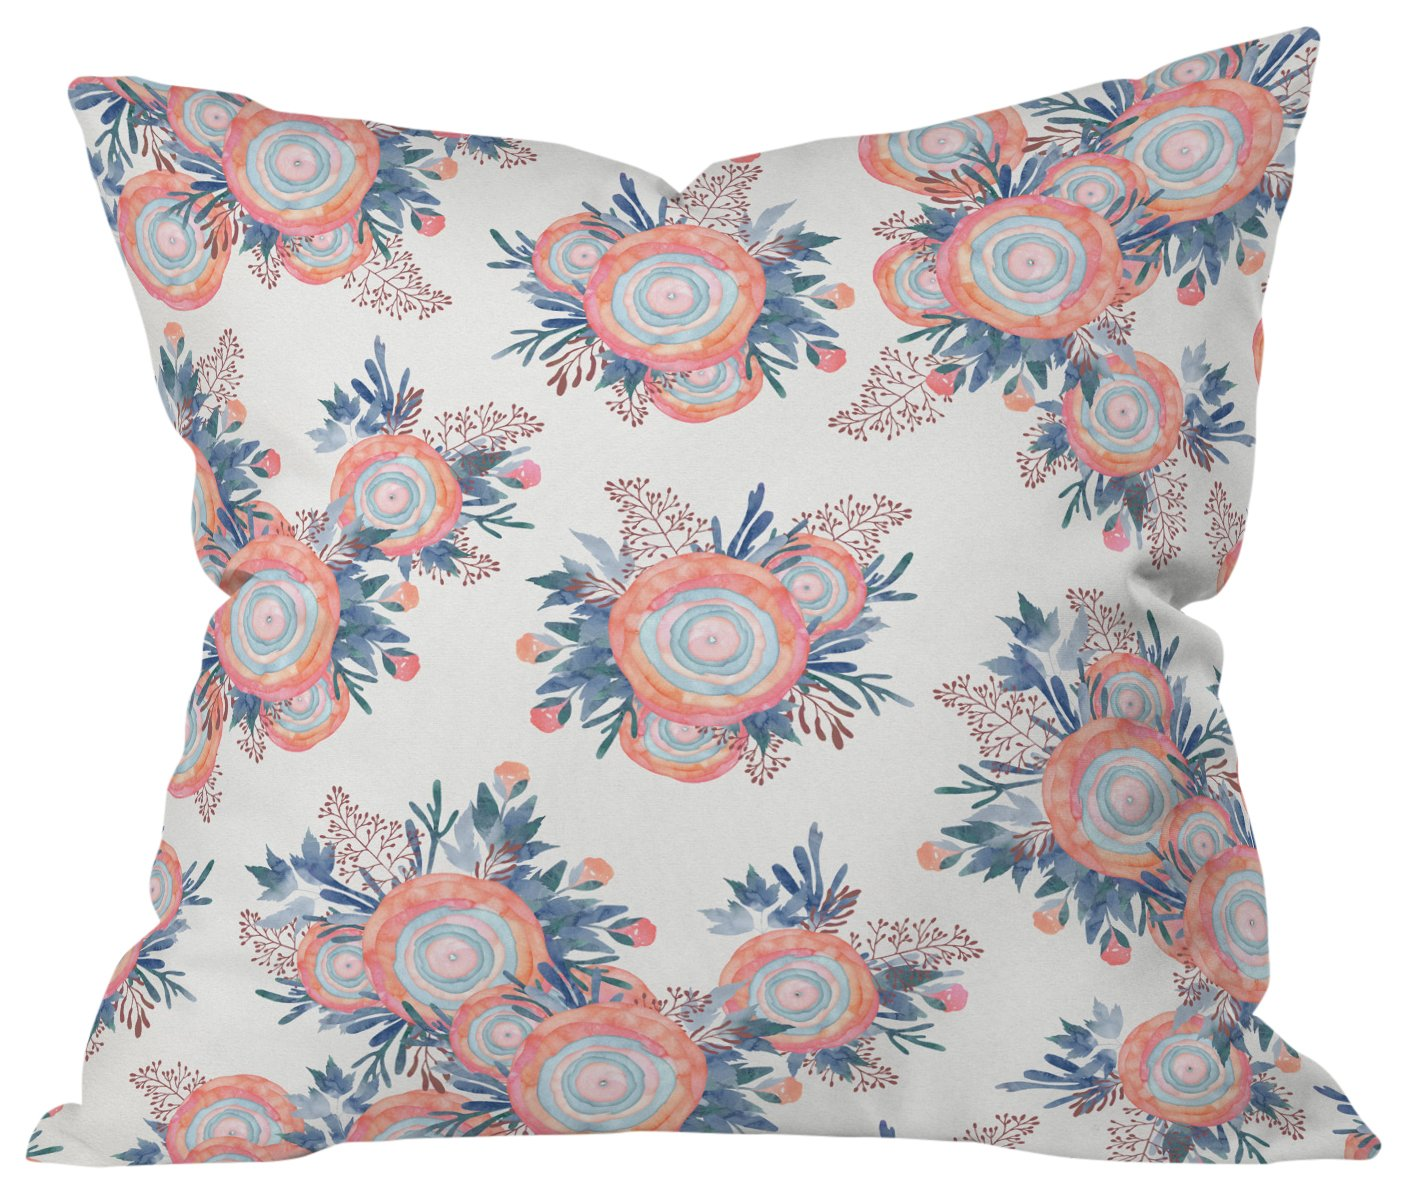 16 X 16 Deny Designs Iveta Abolina Cream Trails Outdoor Throw Pillow Home Kitchen Decorative Pillows Inserts Covers